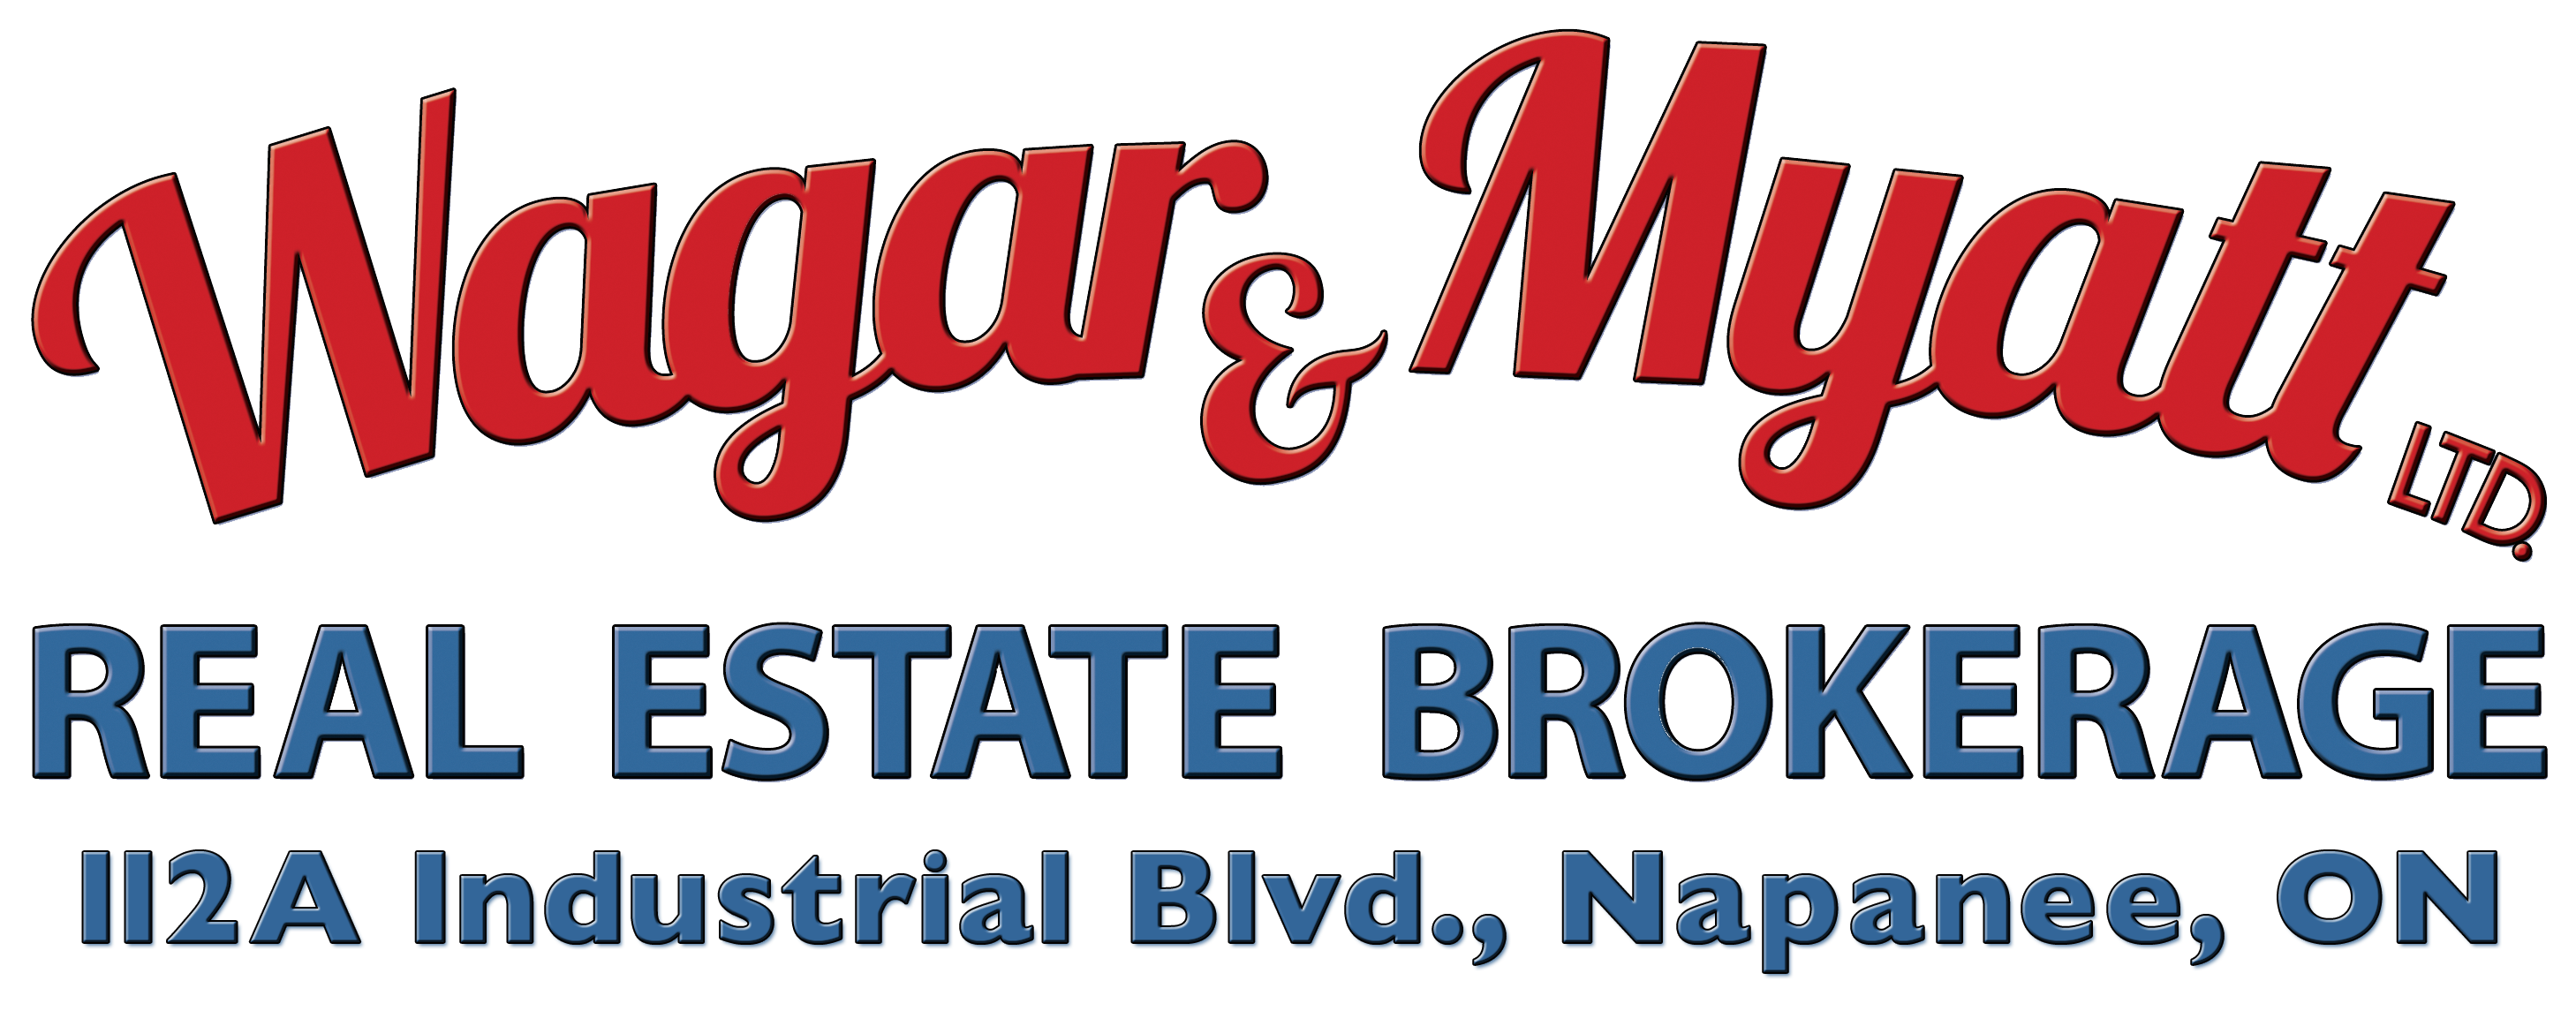 Wagar & Myatt Ltd., Real Estate Brokerage